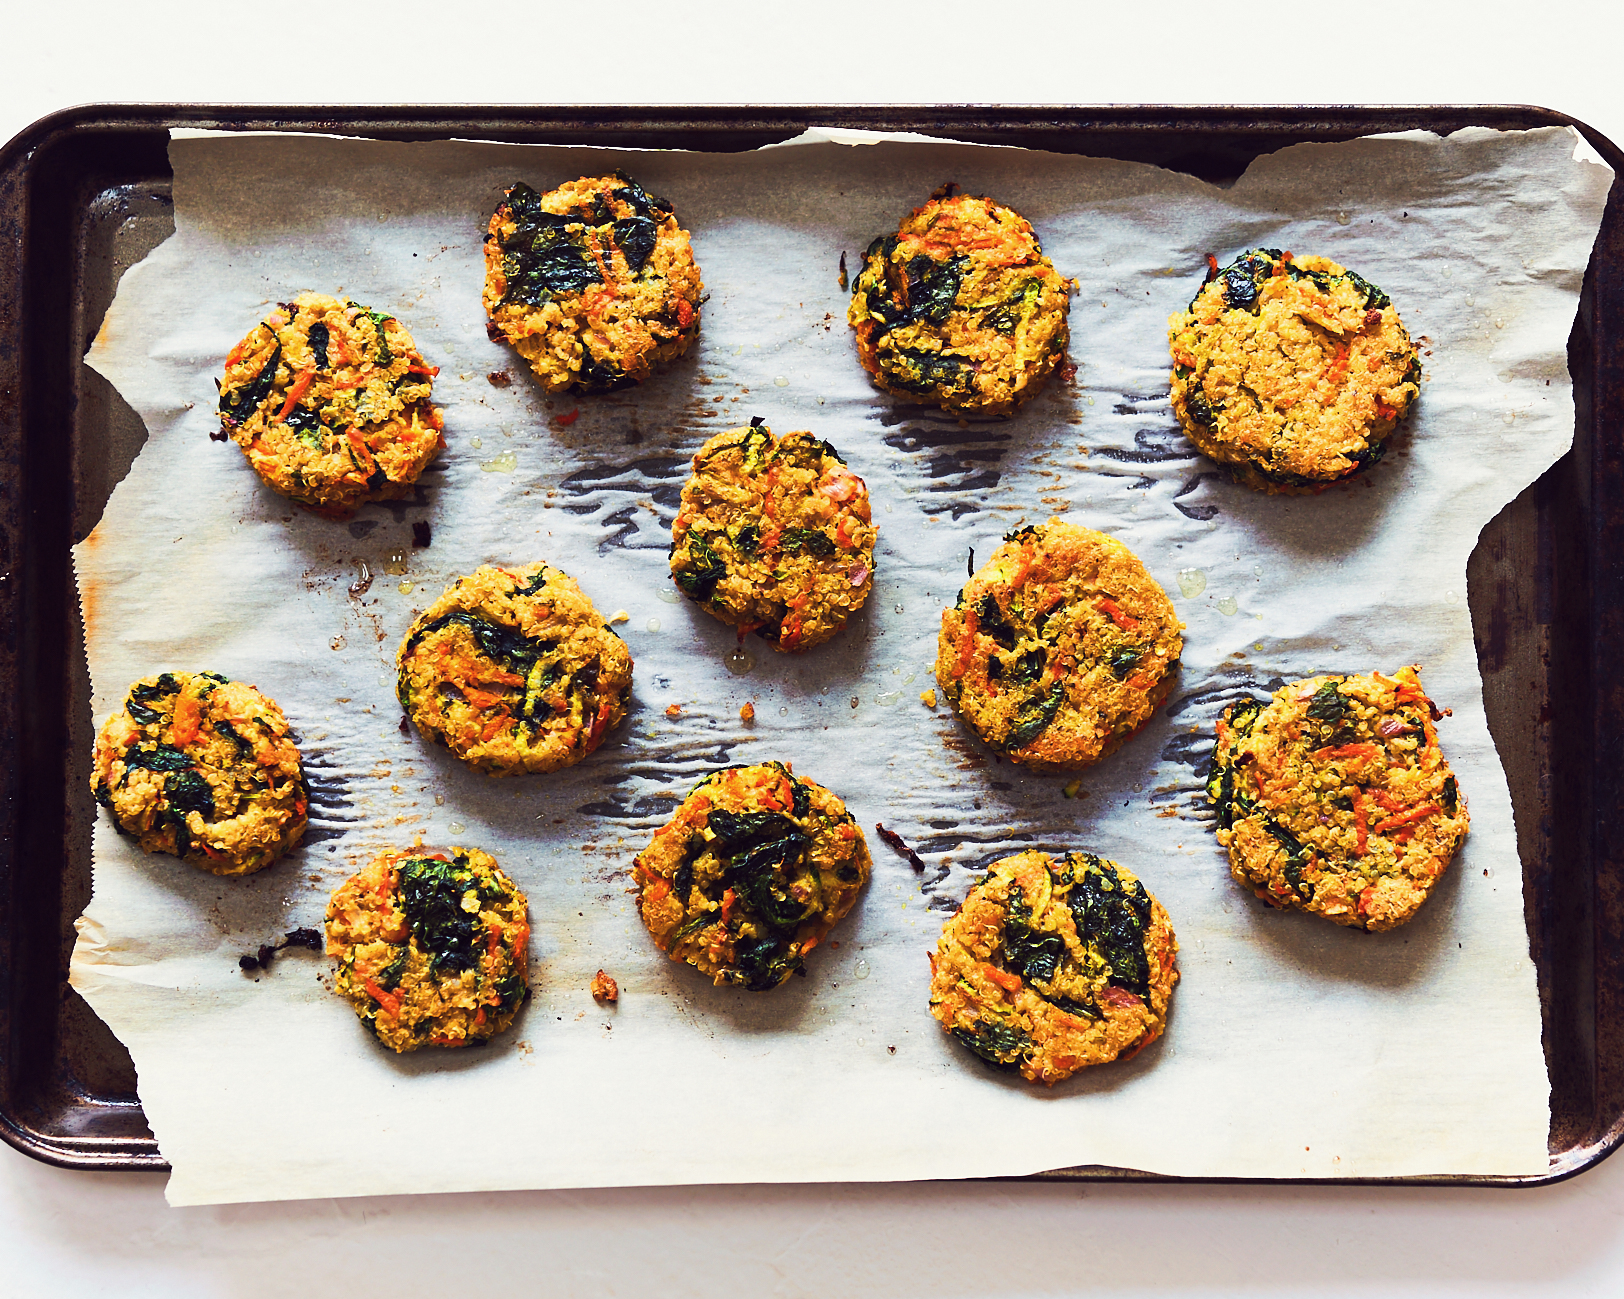 These quinoa patties are also veggie burgers and are gluten free and vegan. They have quinoa, tahini, spinach, shallots, carrots and zucchini.